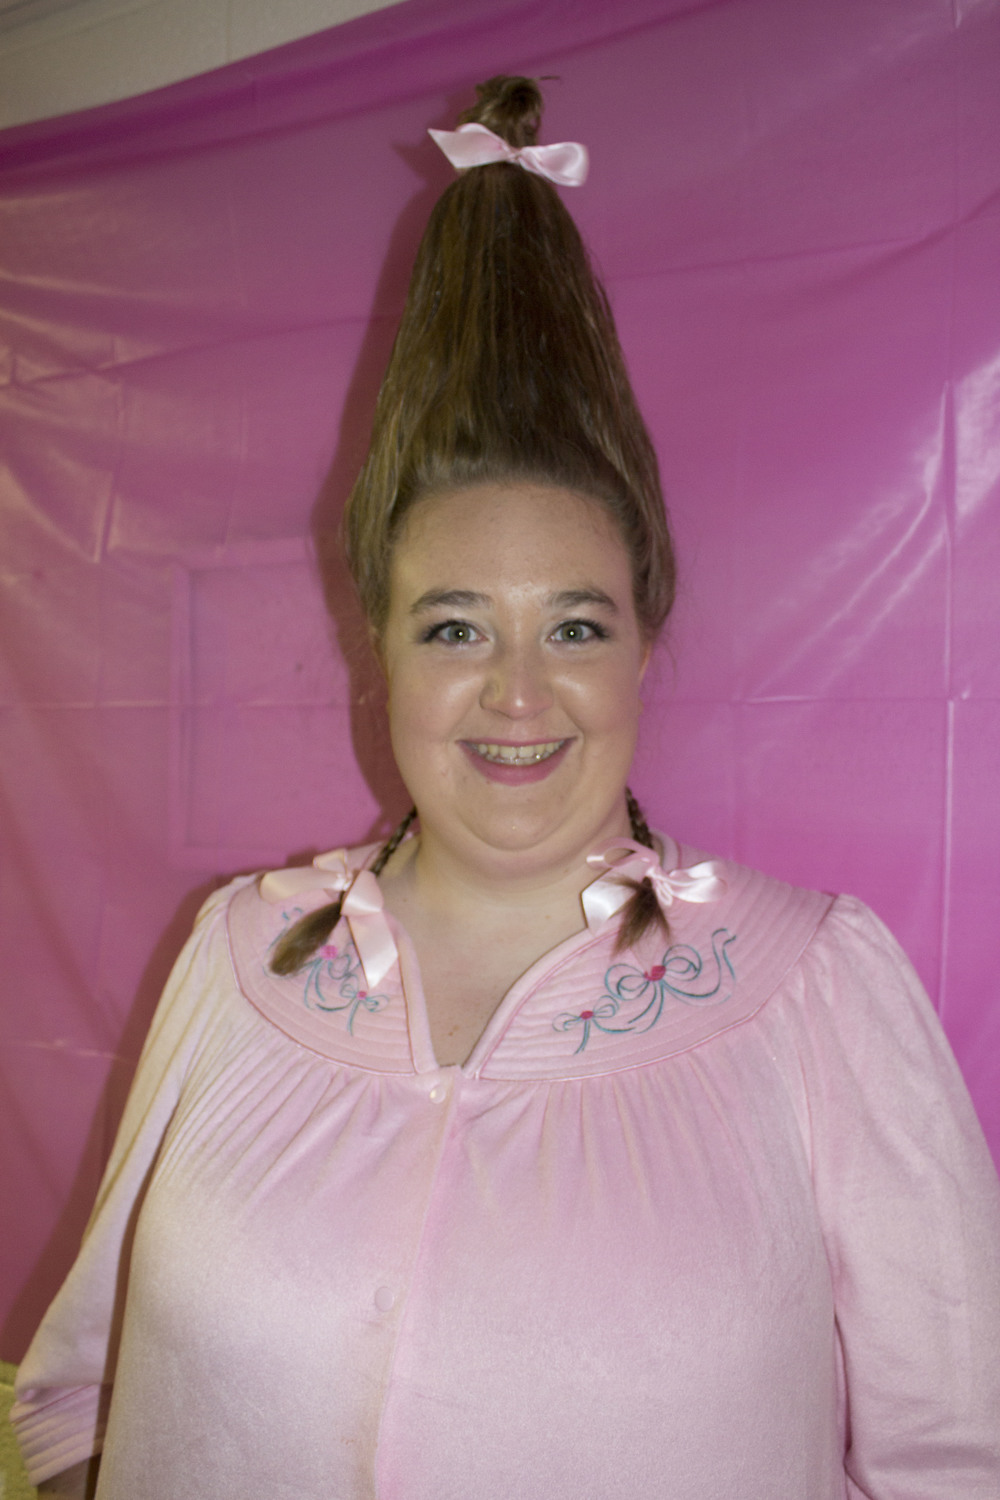 Sophomore Sarah Howard creatively dressed up as Cindy Lou Who.